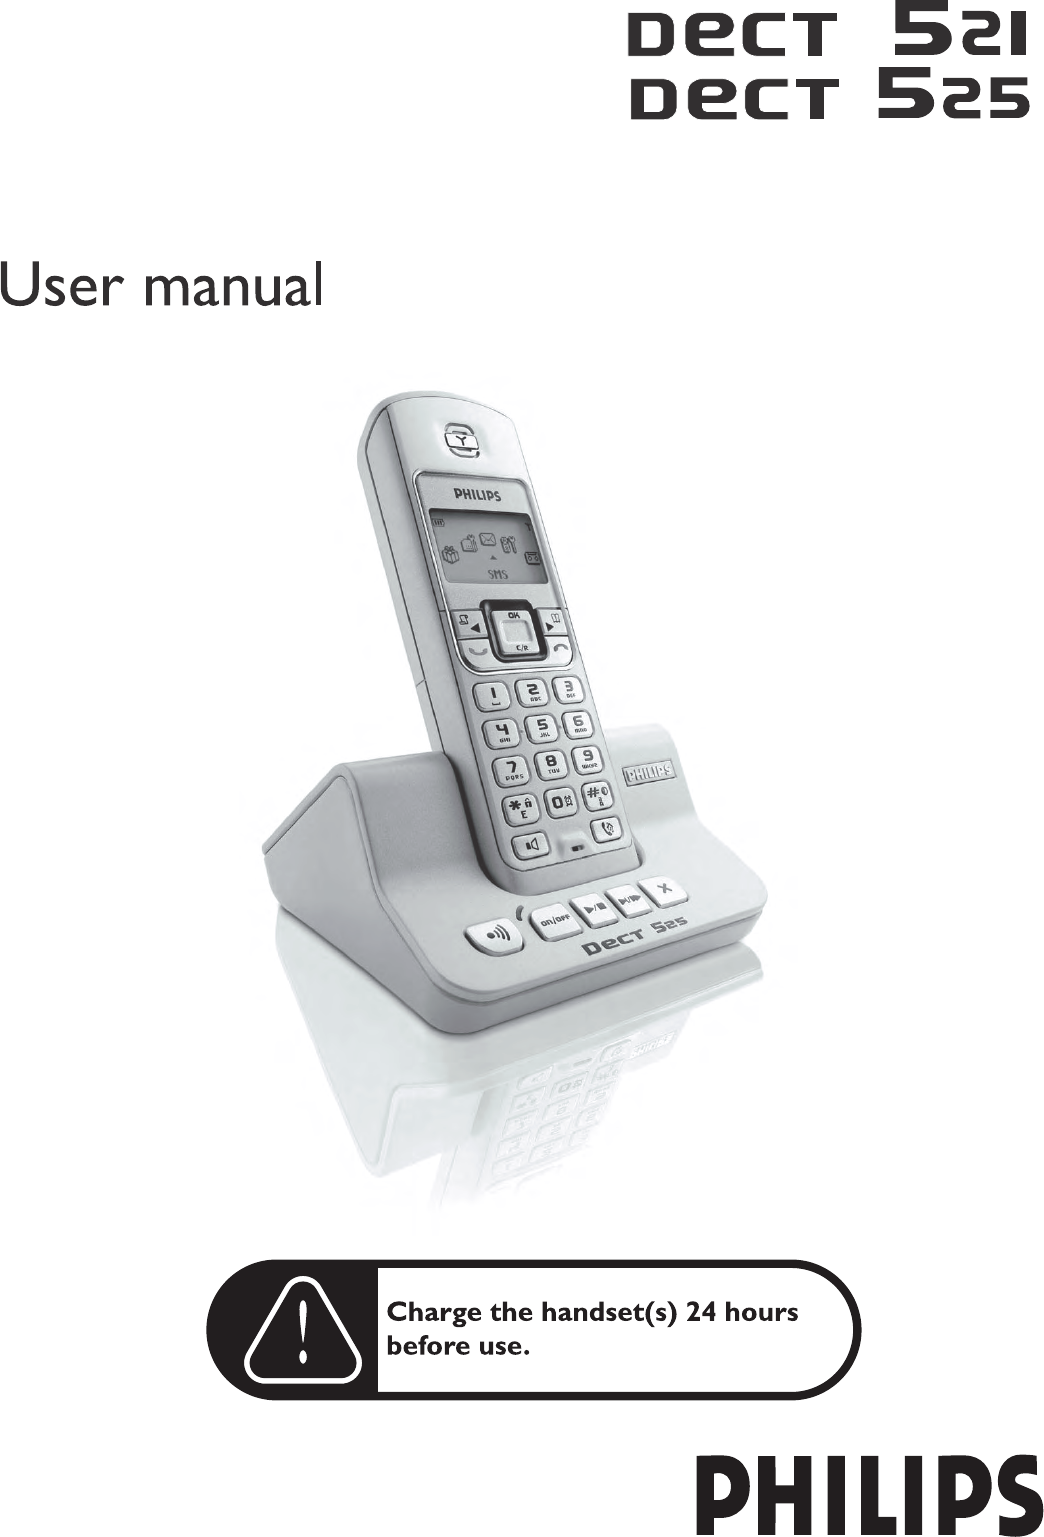 philips cordless telephone dect521 dect 525 user guide rh phone manualsonline com Philips DVD Player Manual Philips TV Manual